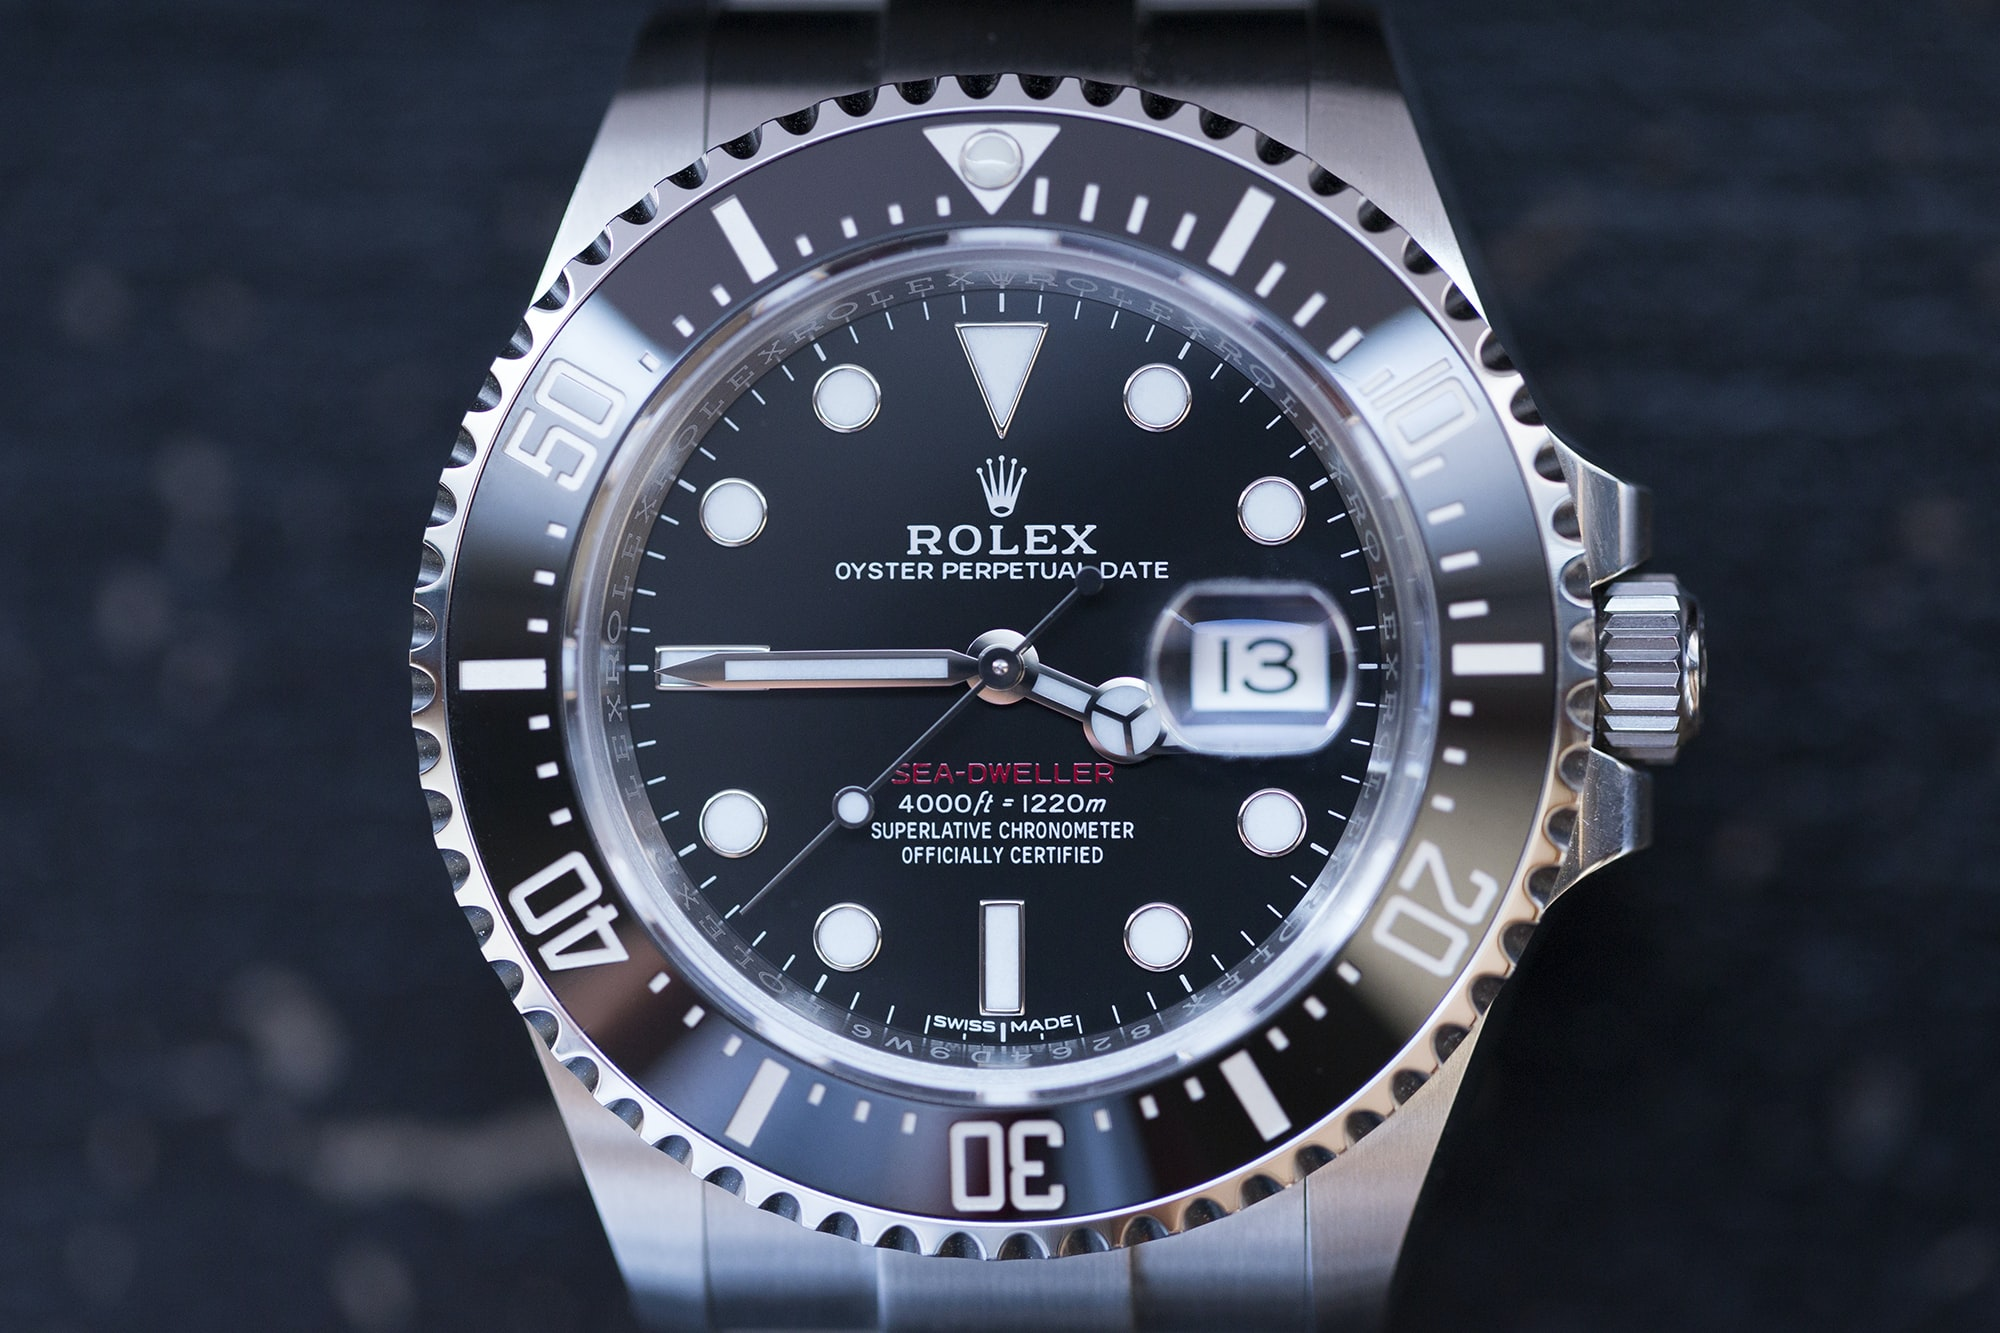 Rolex Sea-Dweller 2017 A Week On The Wrist: The Rolex Sea-Dweller Reference 126600 A Week On The Wrist: The Rolex Sea-Dweller Reference 126600  20011542 copy